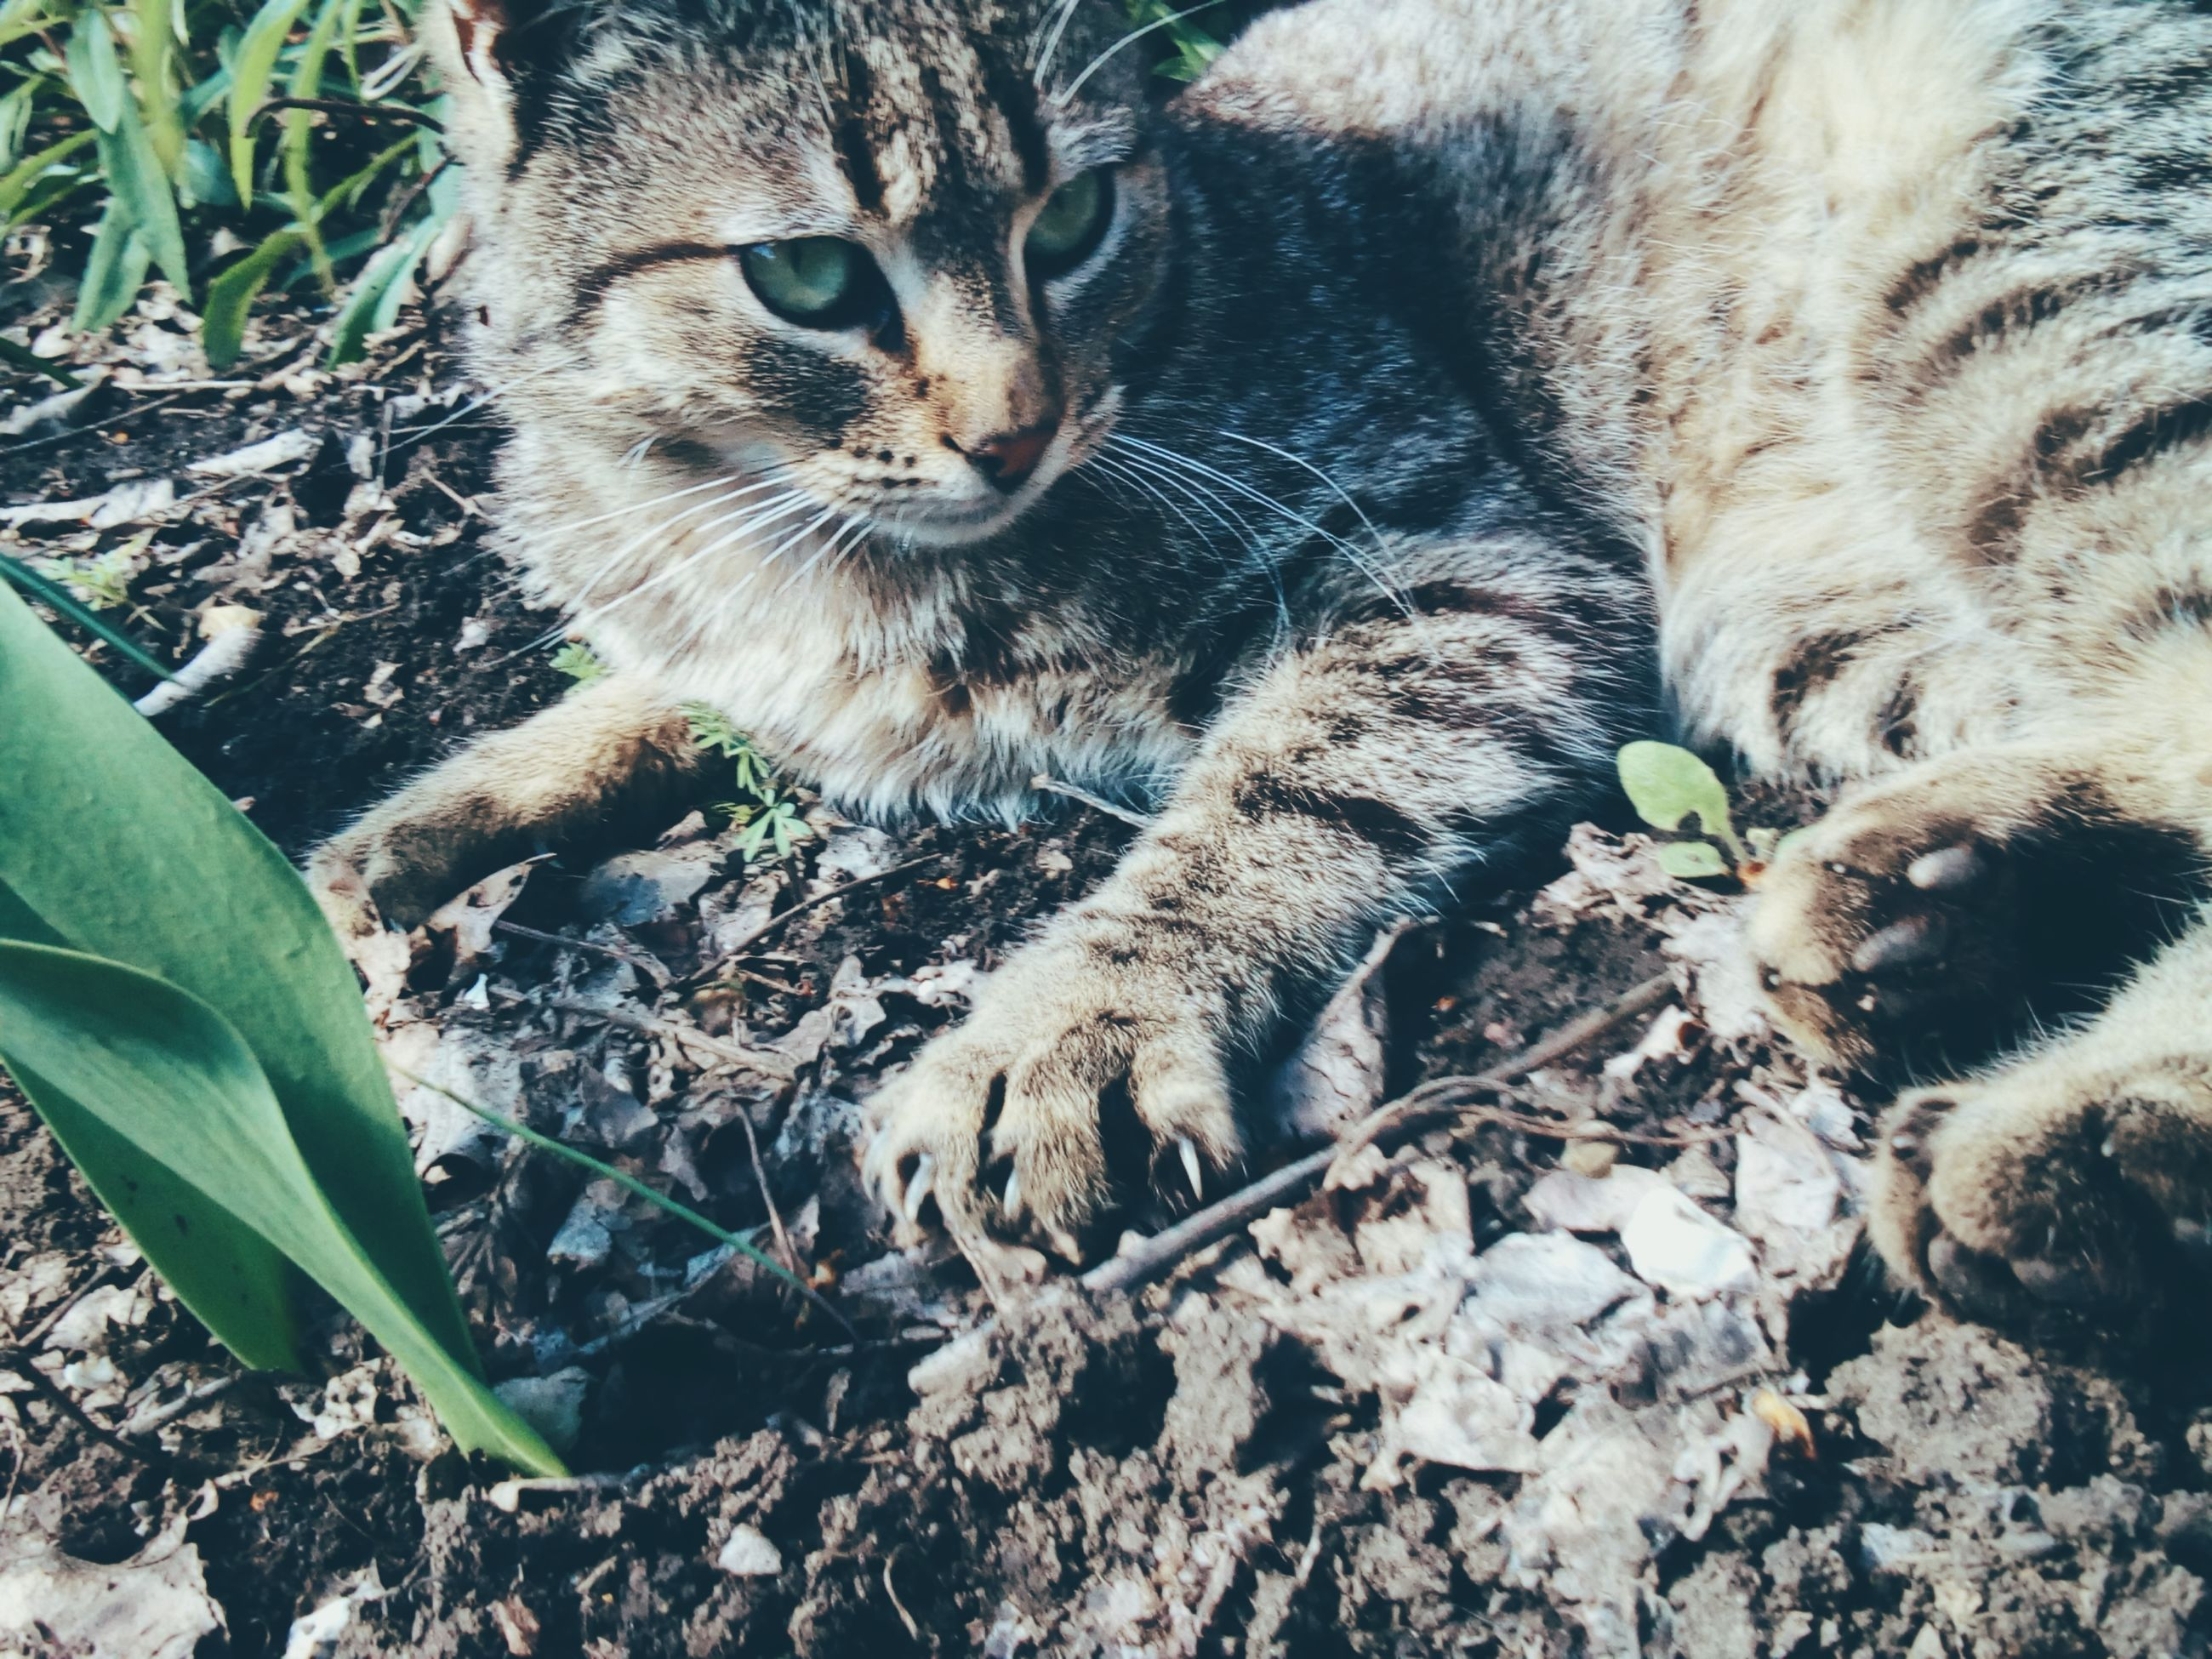 domestic cat, animal themes, mammal, one animal, domestic animals, pets, feline, no people, cat, day, outdoors, close-up, nature